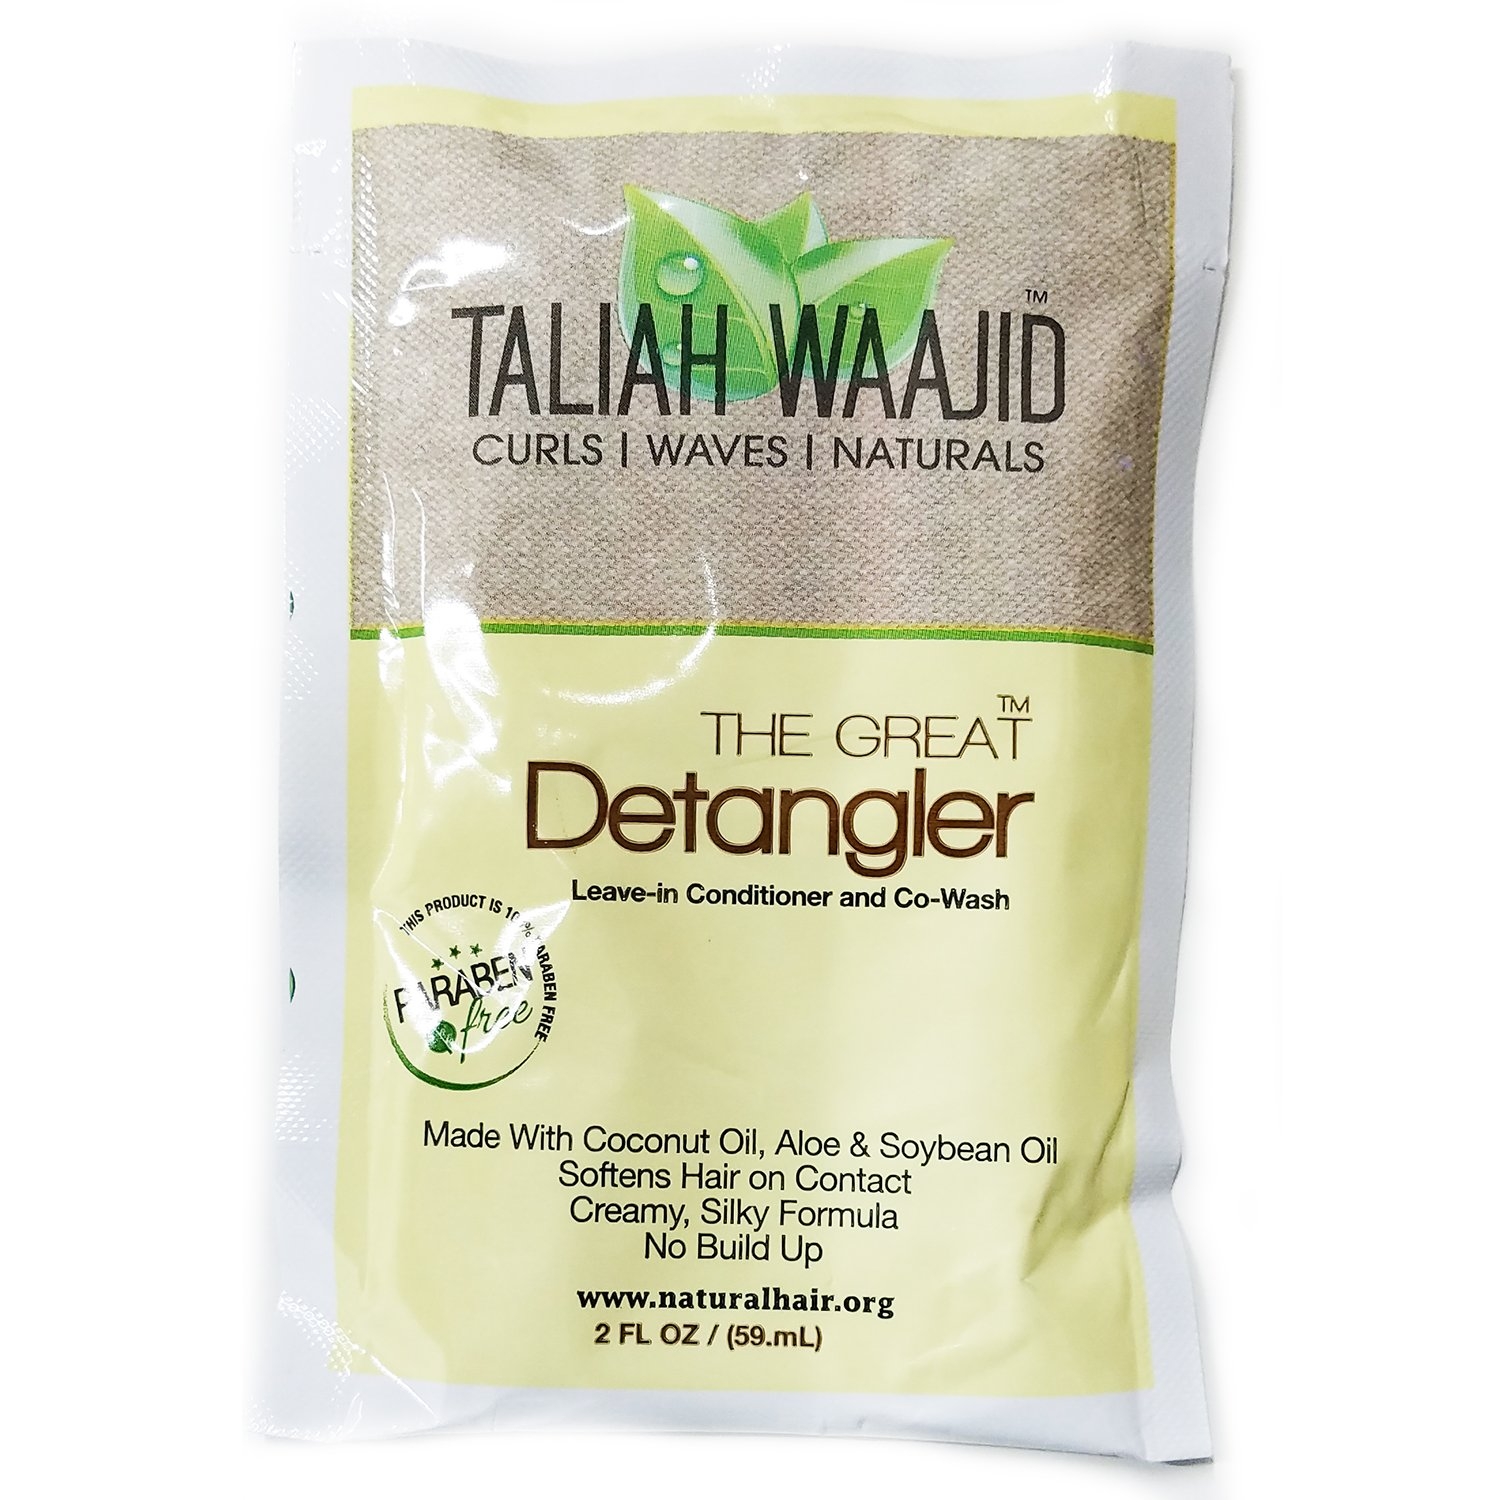 Taliah Waajid The Great Detangler Leave-in Conditioner and Co-Wash, 2 Ounce (3 Pack)